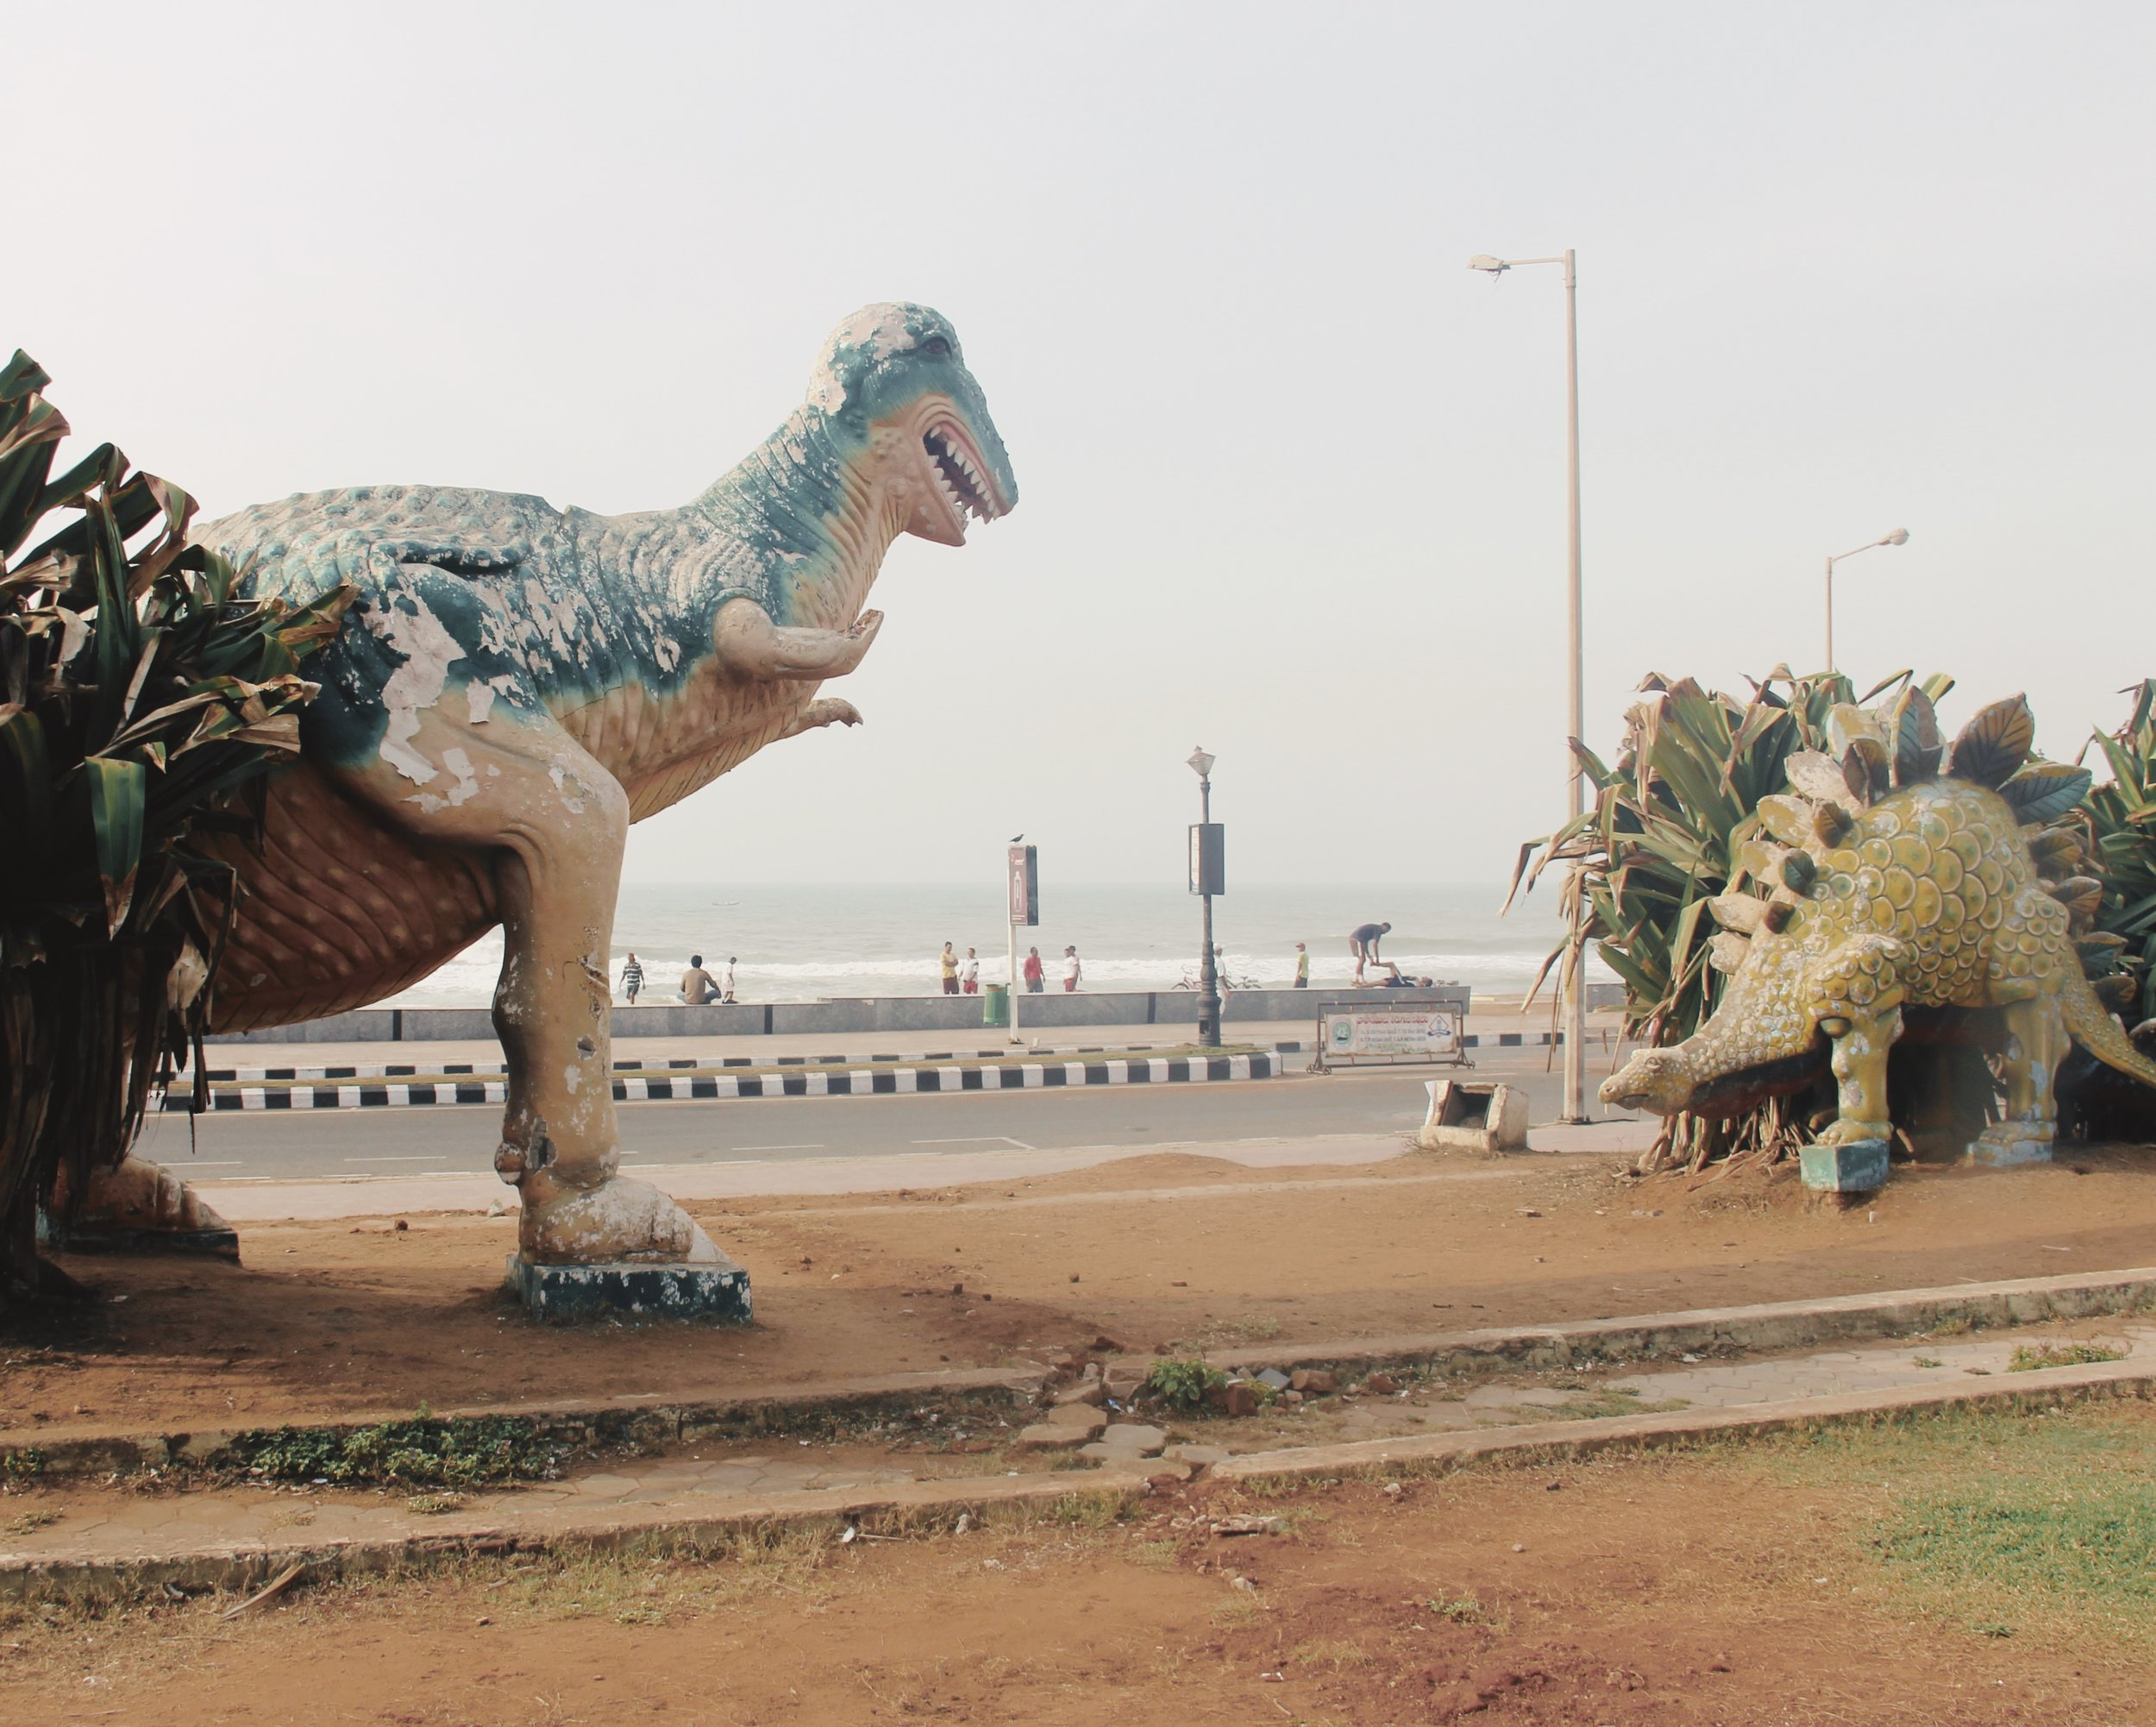 Two dinosaur statues having a stand off.